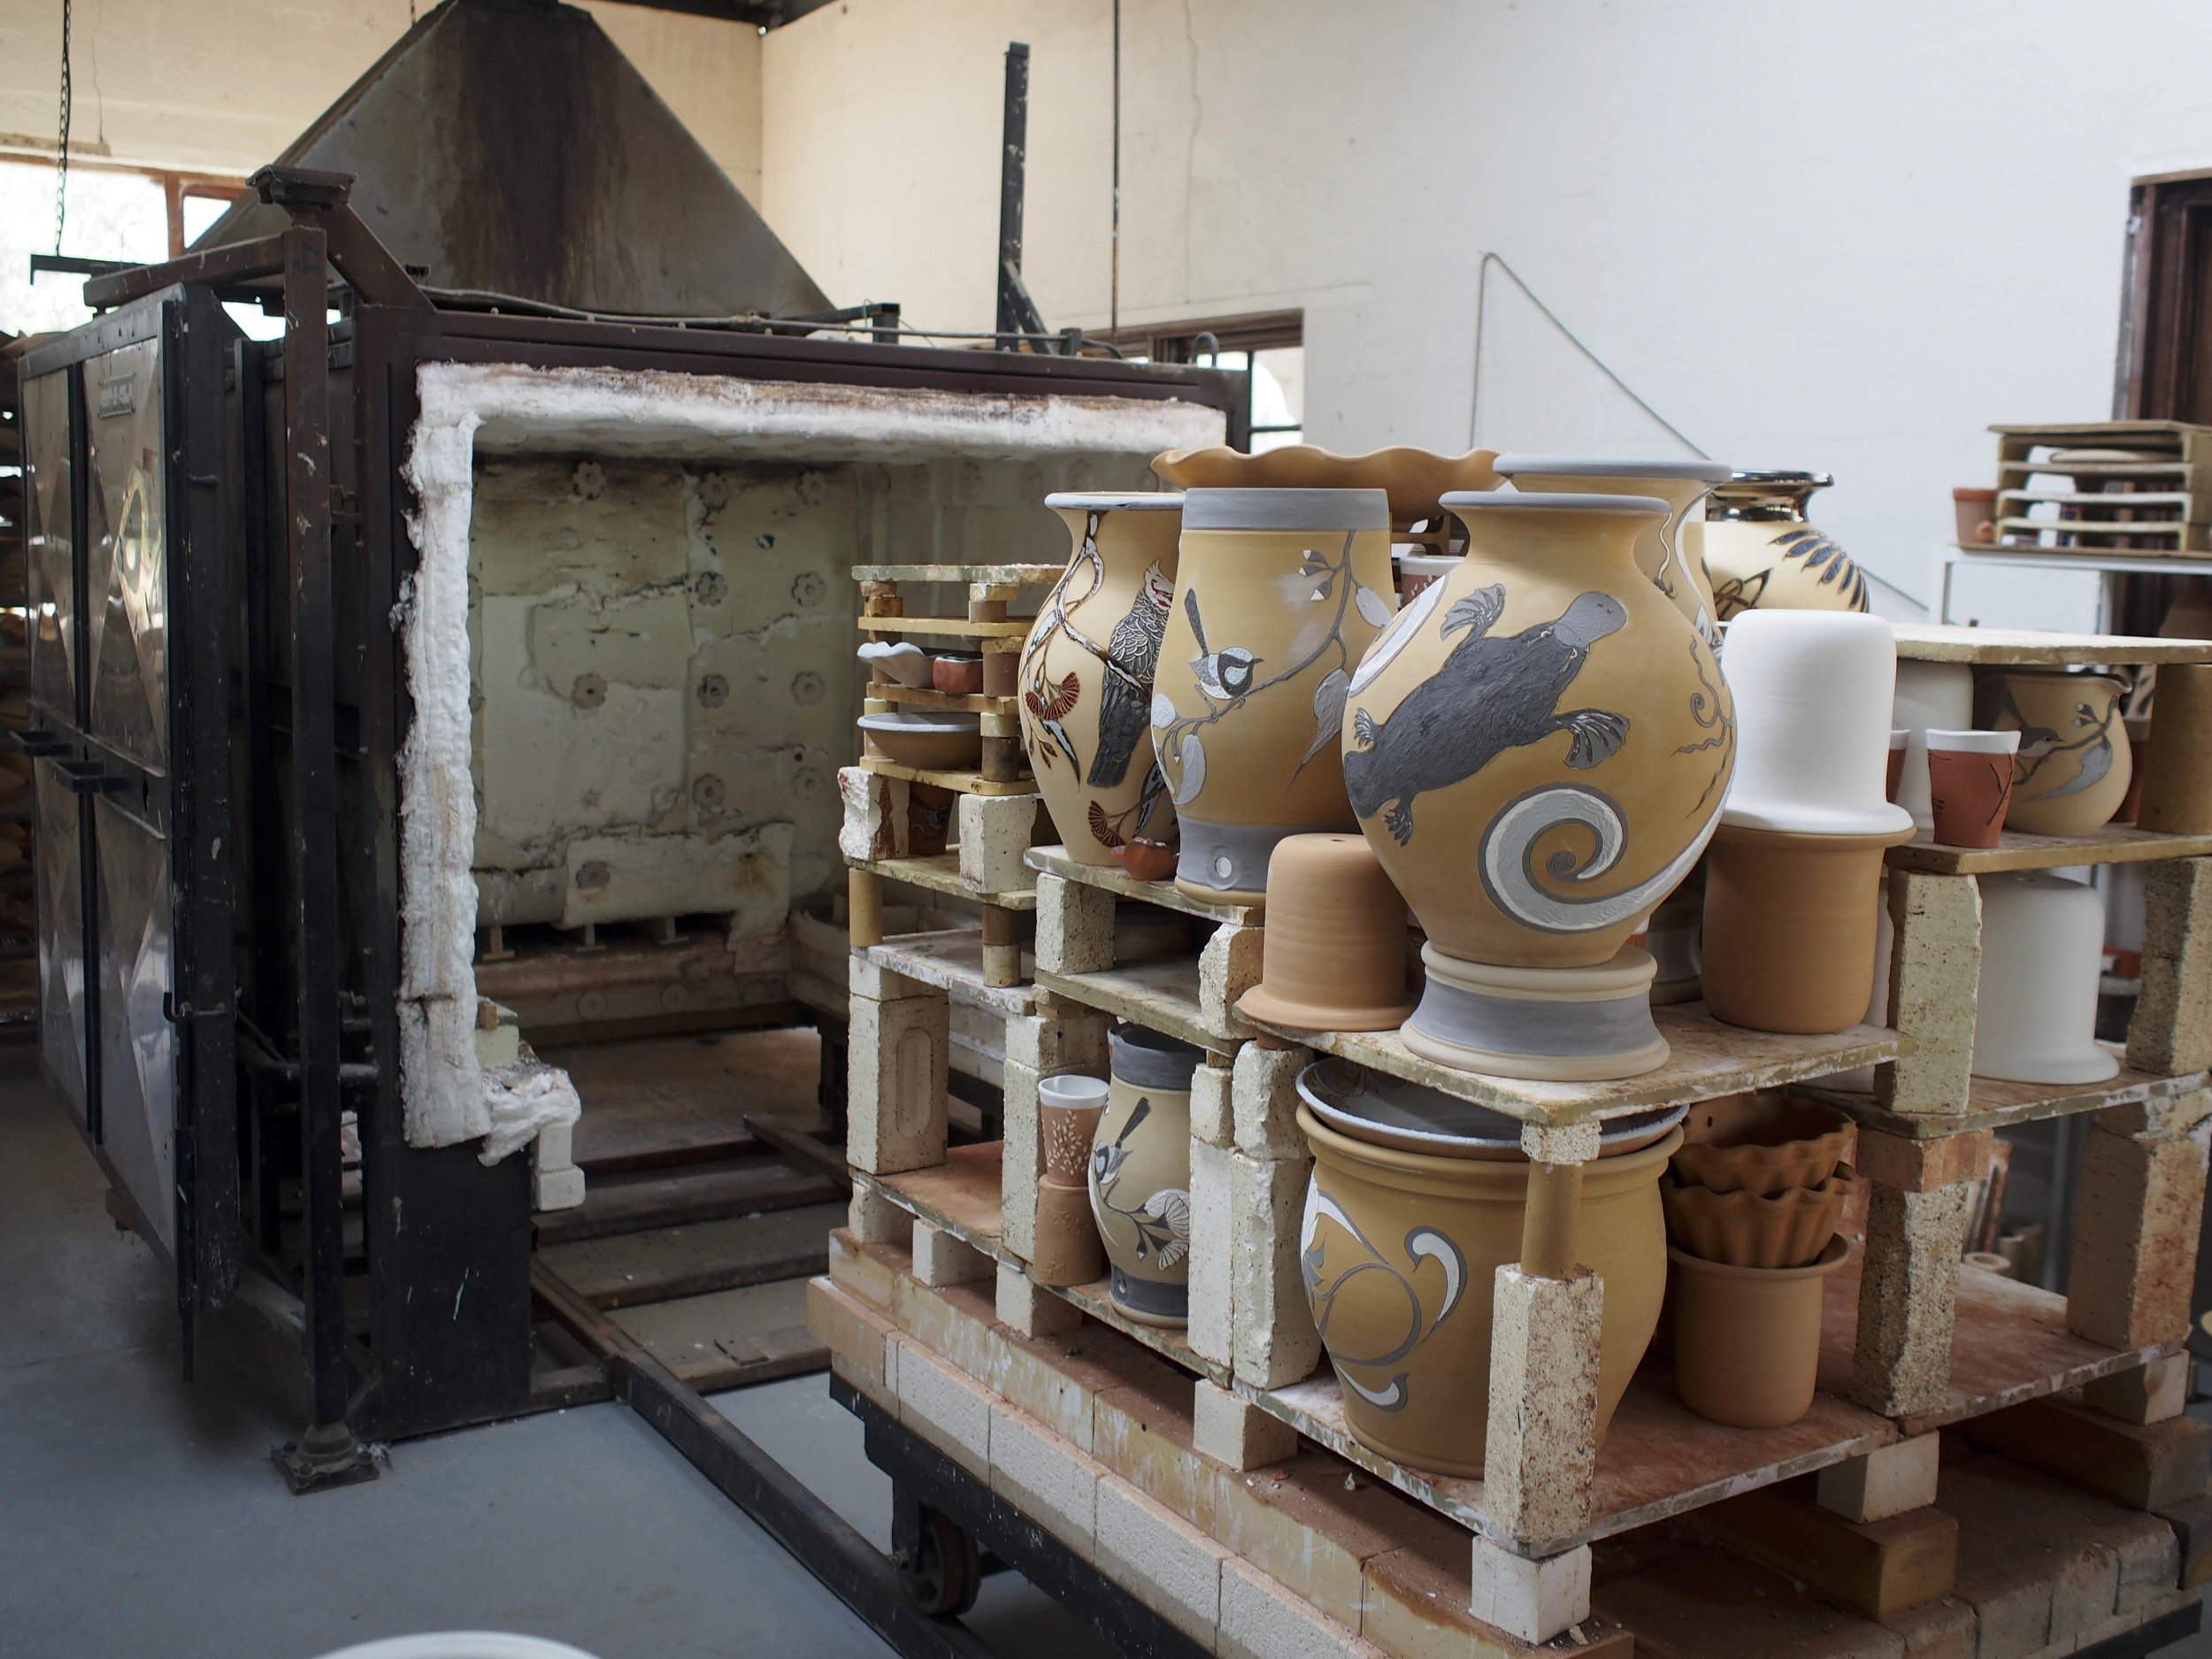 this kiln was the size of a room!!!